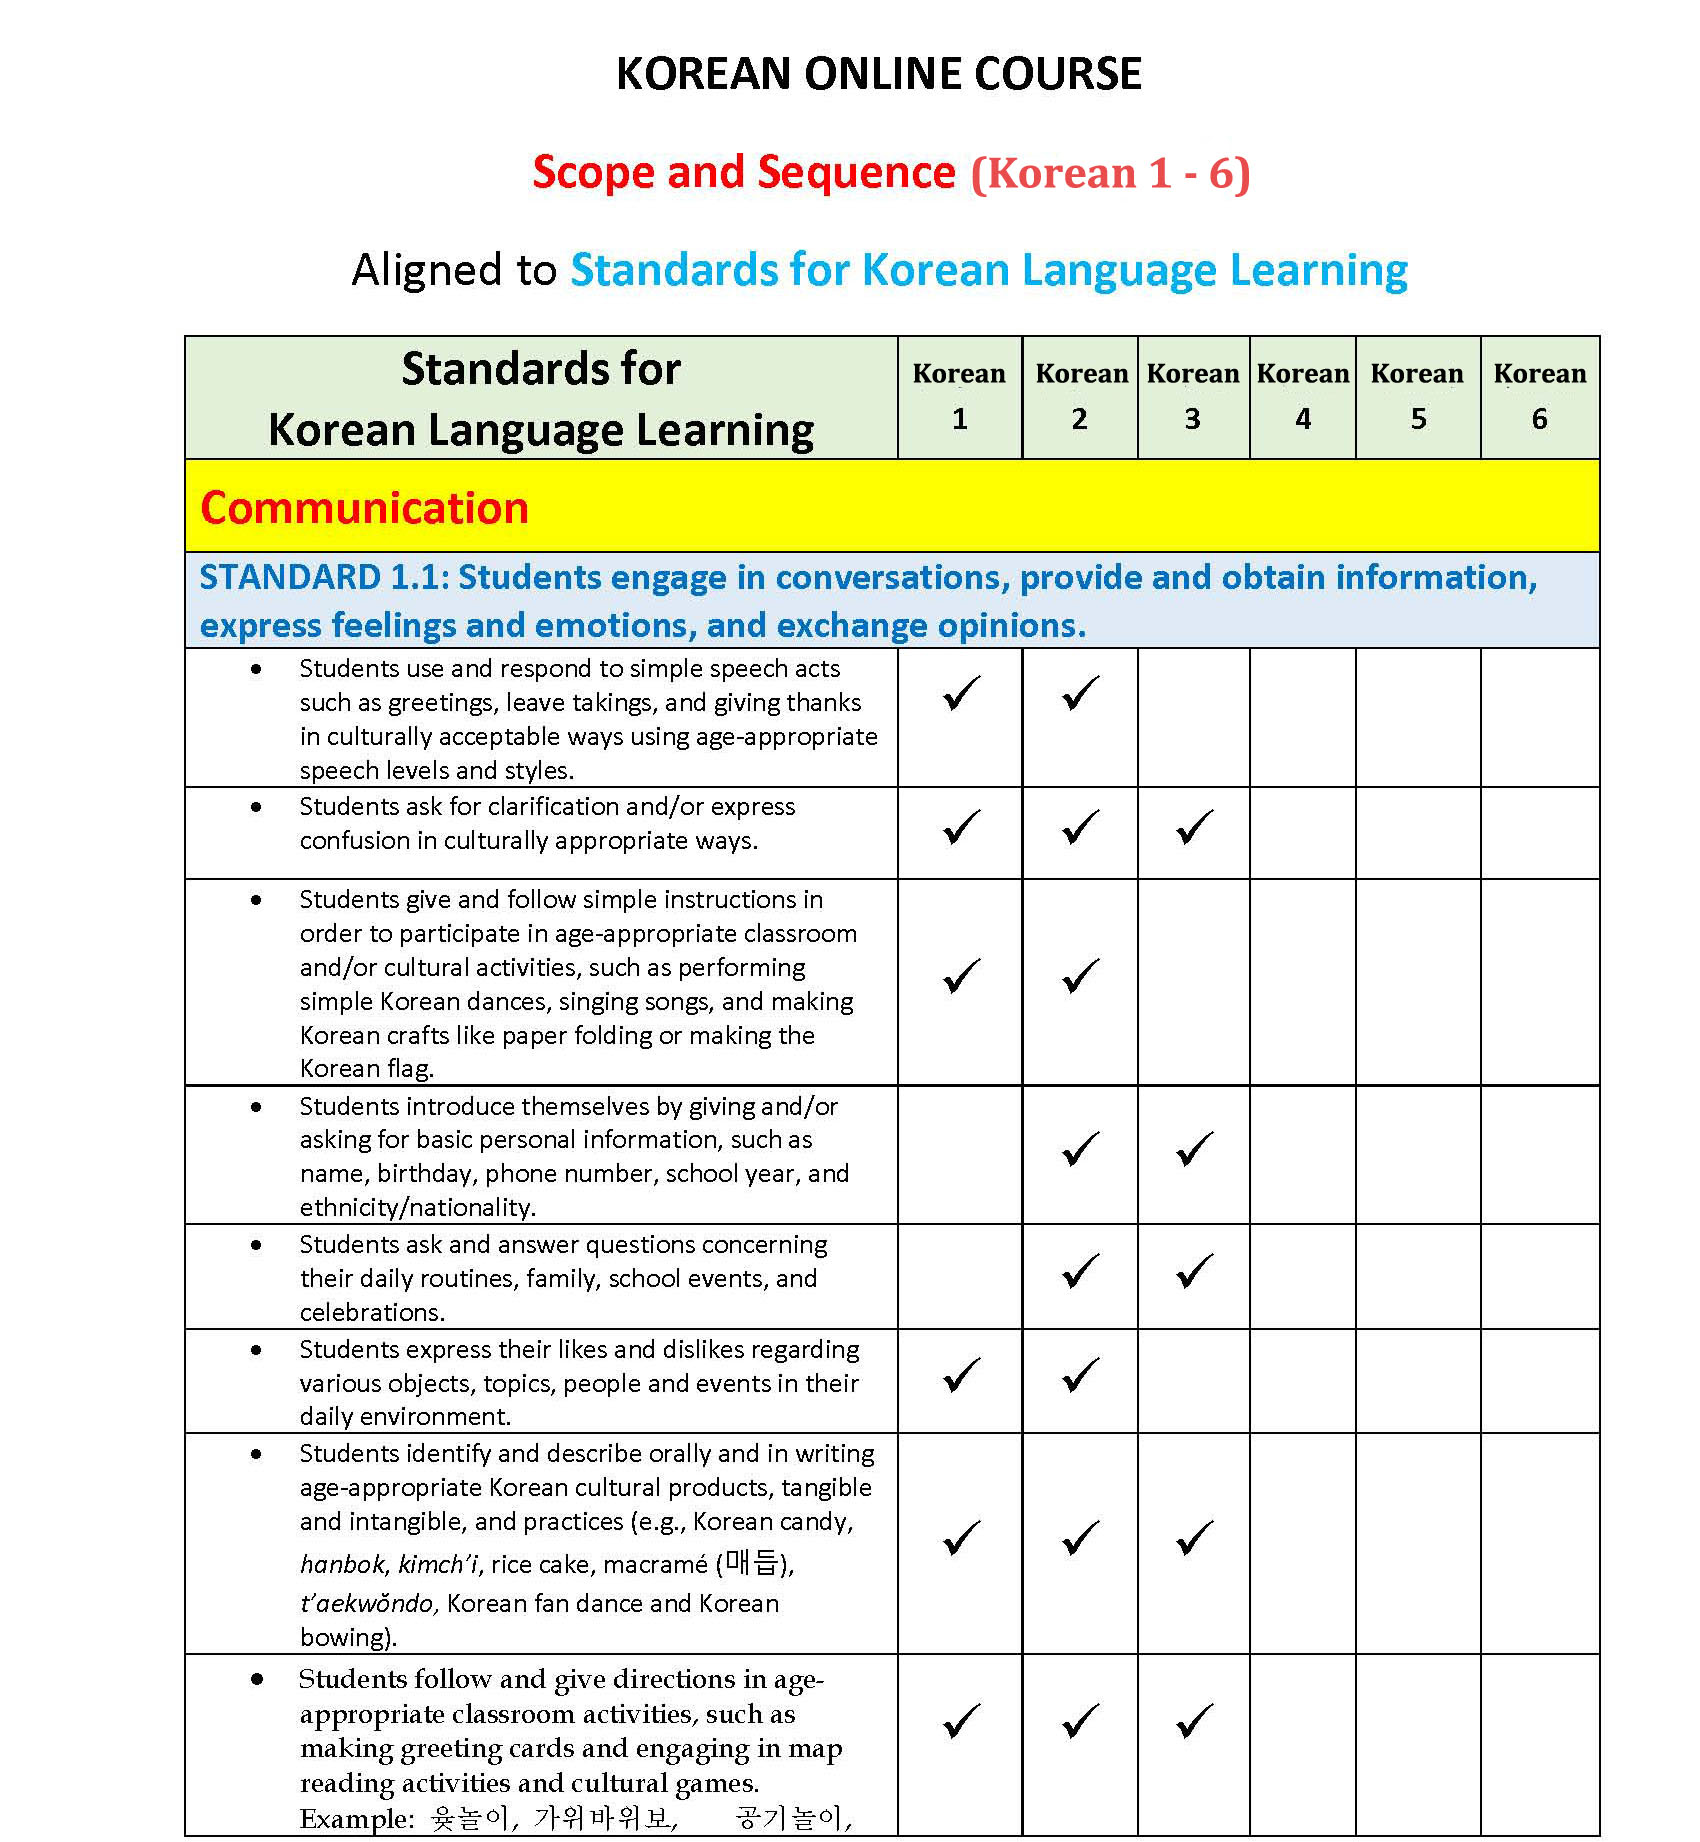 Scope-and-Sequence-KECOS-Level-1-6_Page_01revised